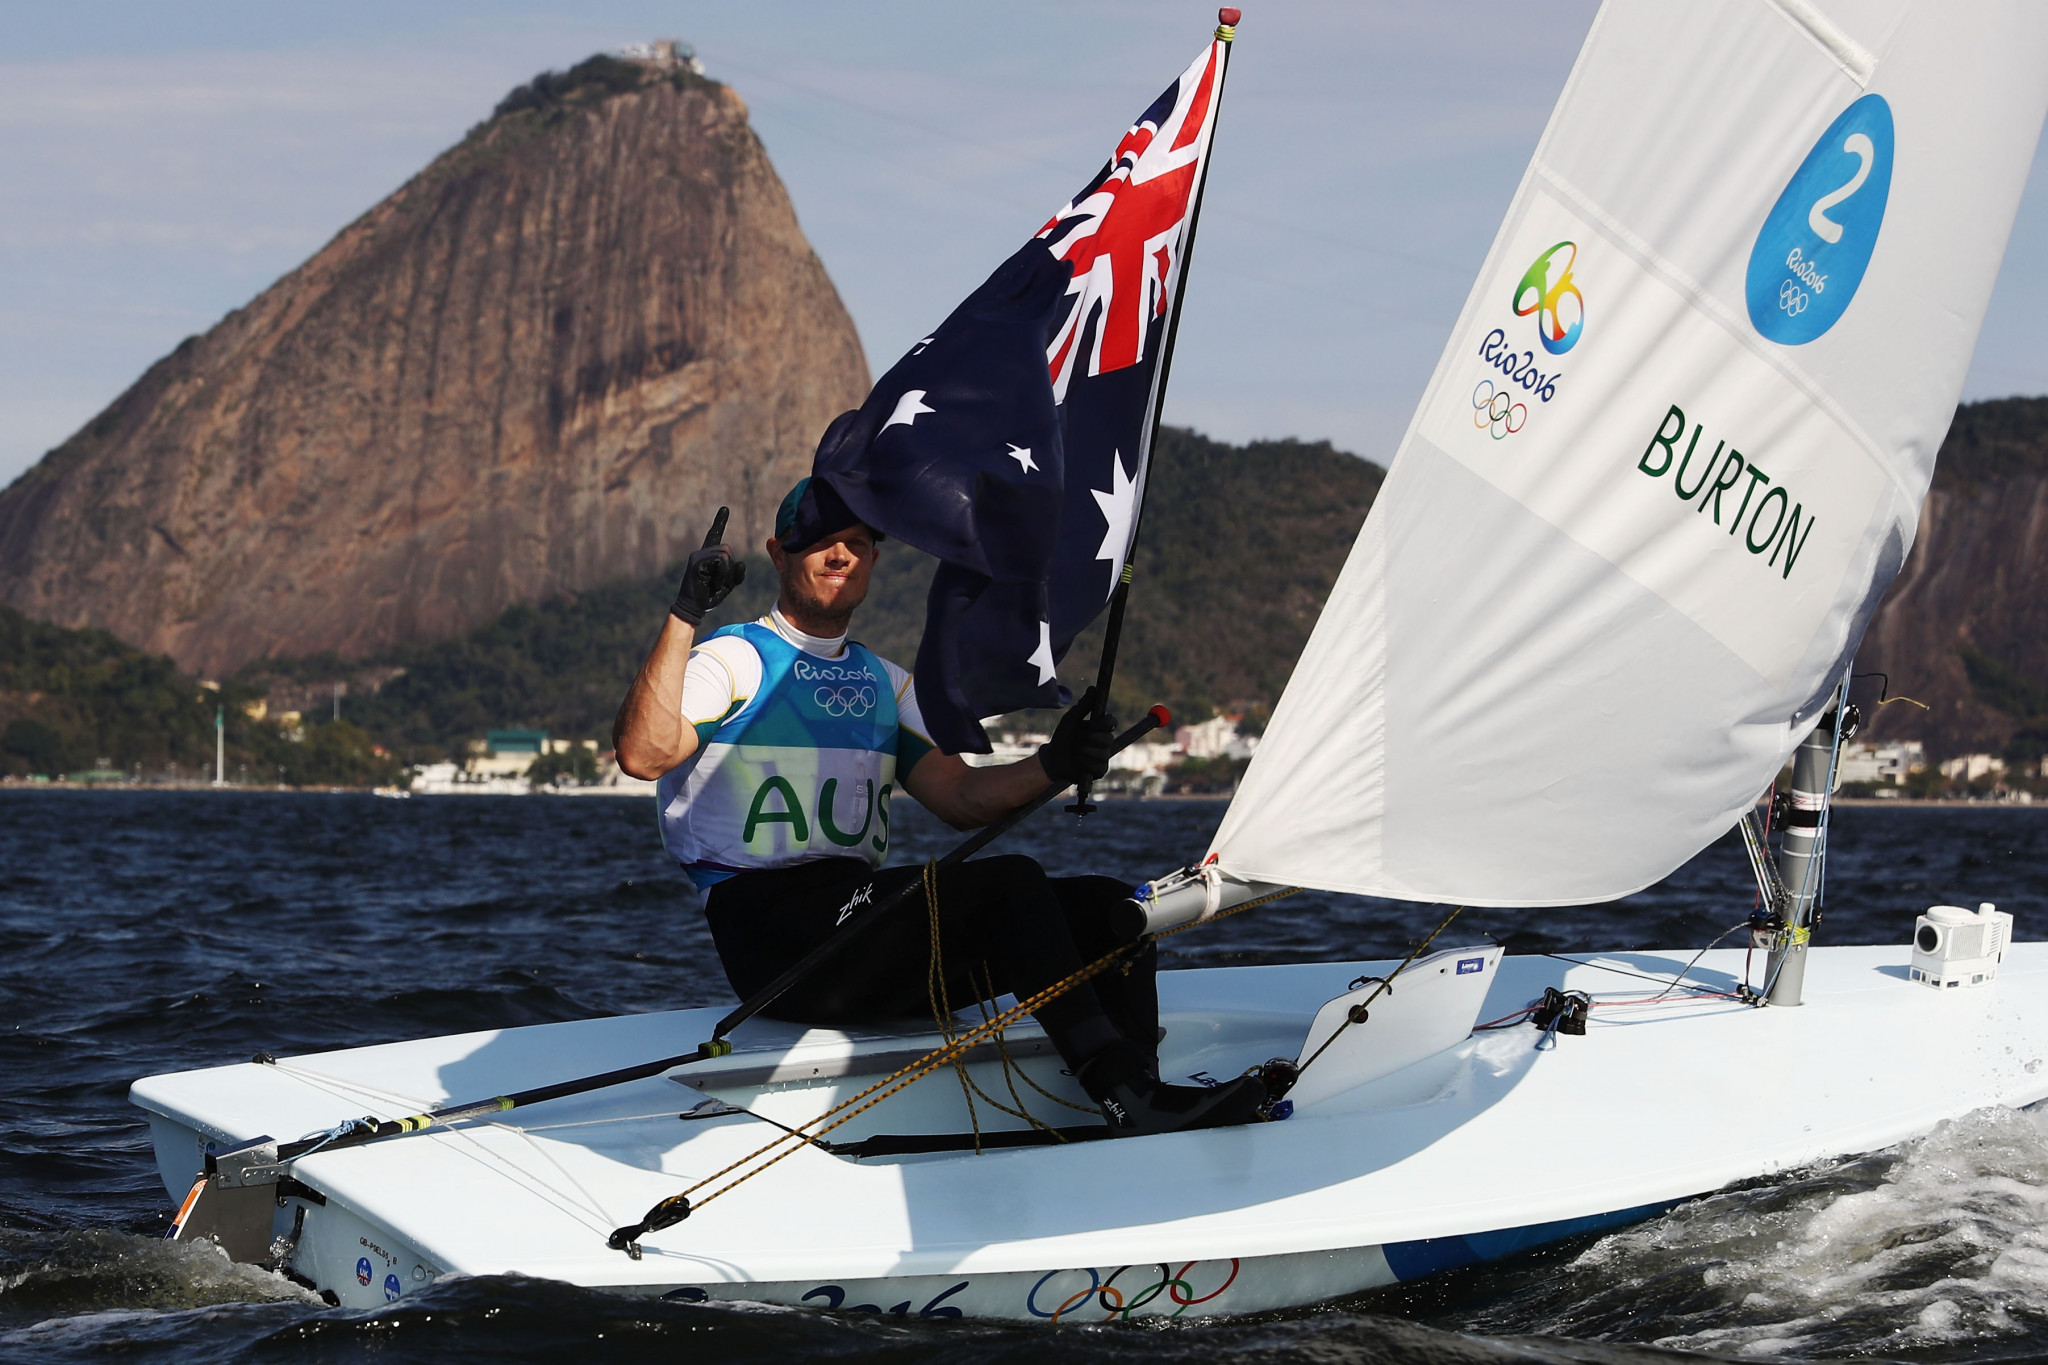 Australia have won 11 Olympic sailing gold medals, including Tom Burton in the Laser at Rio 2016 ©Getty Images